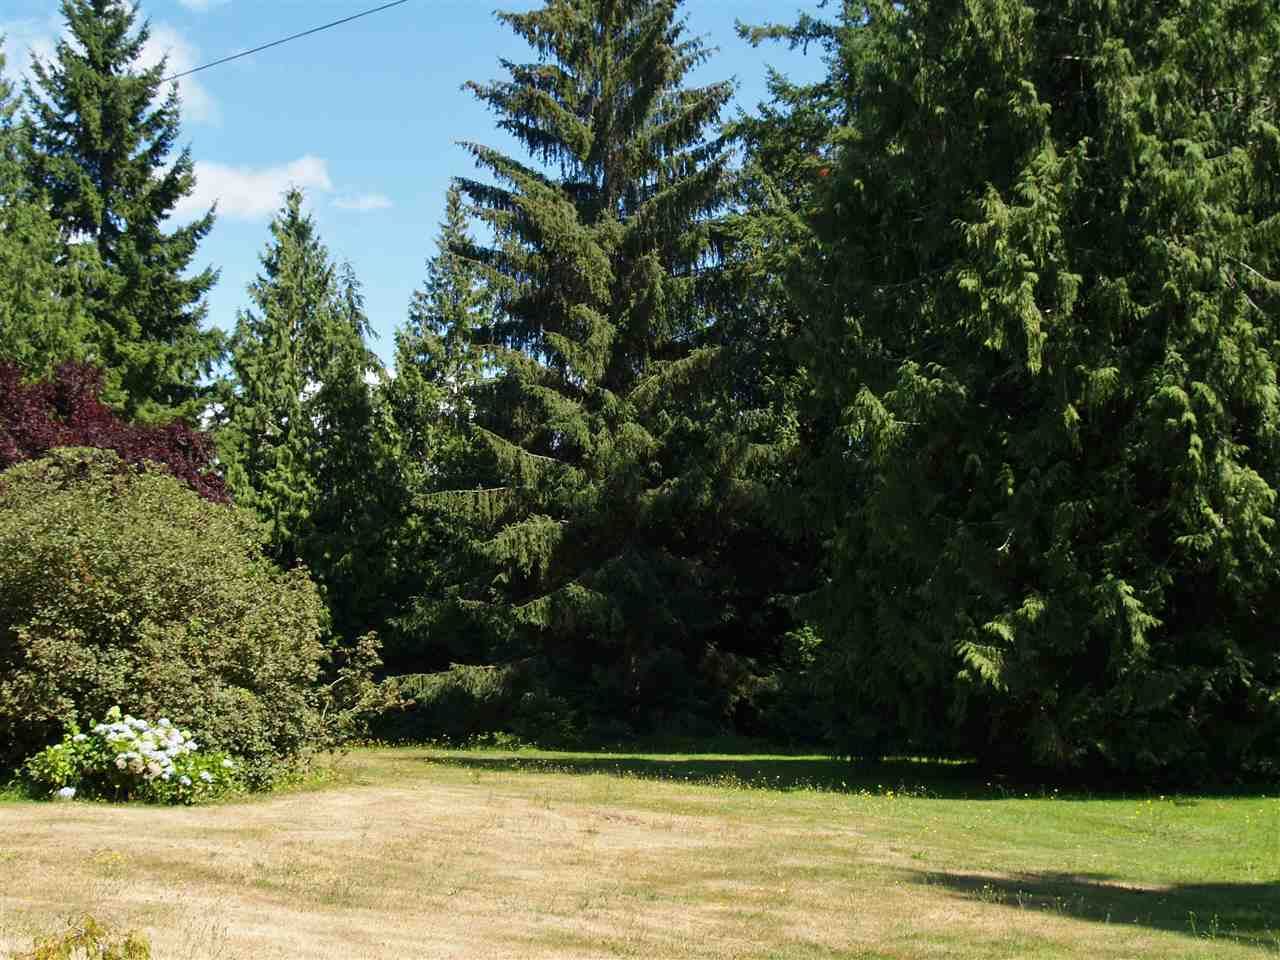 This property offers many options with its many cleared areas. As well you can get shade from the perimeter trees and those on the back half of the property.